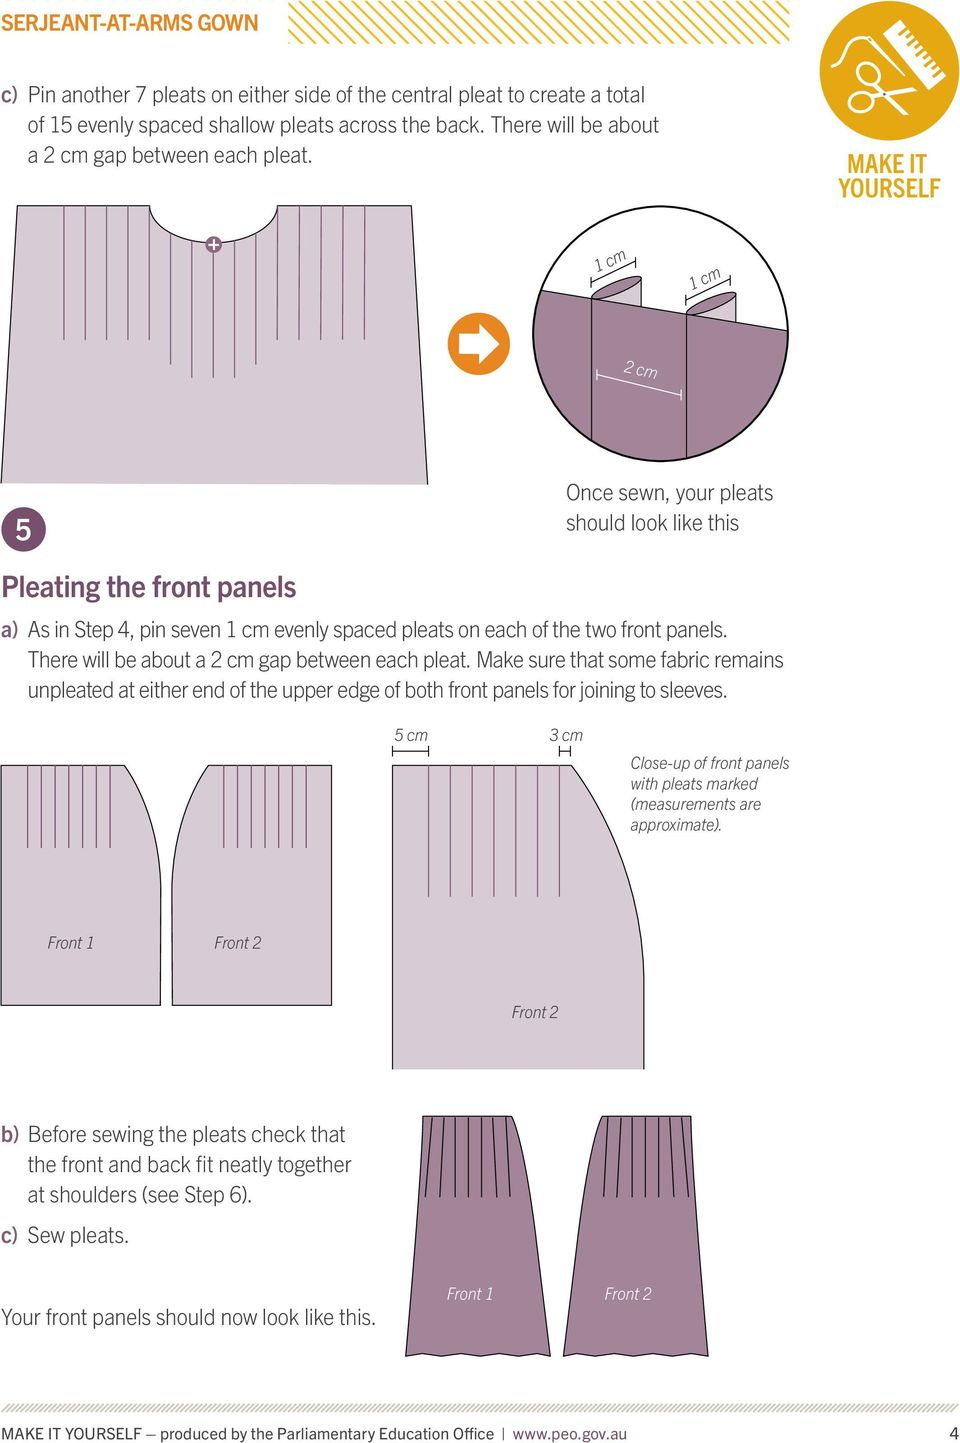 There will be about a 2 cm gap between each pleat. Make sure that some fabric remains unpleated at either end of the upper edge of both front panels for joining to sleeves.